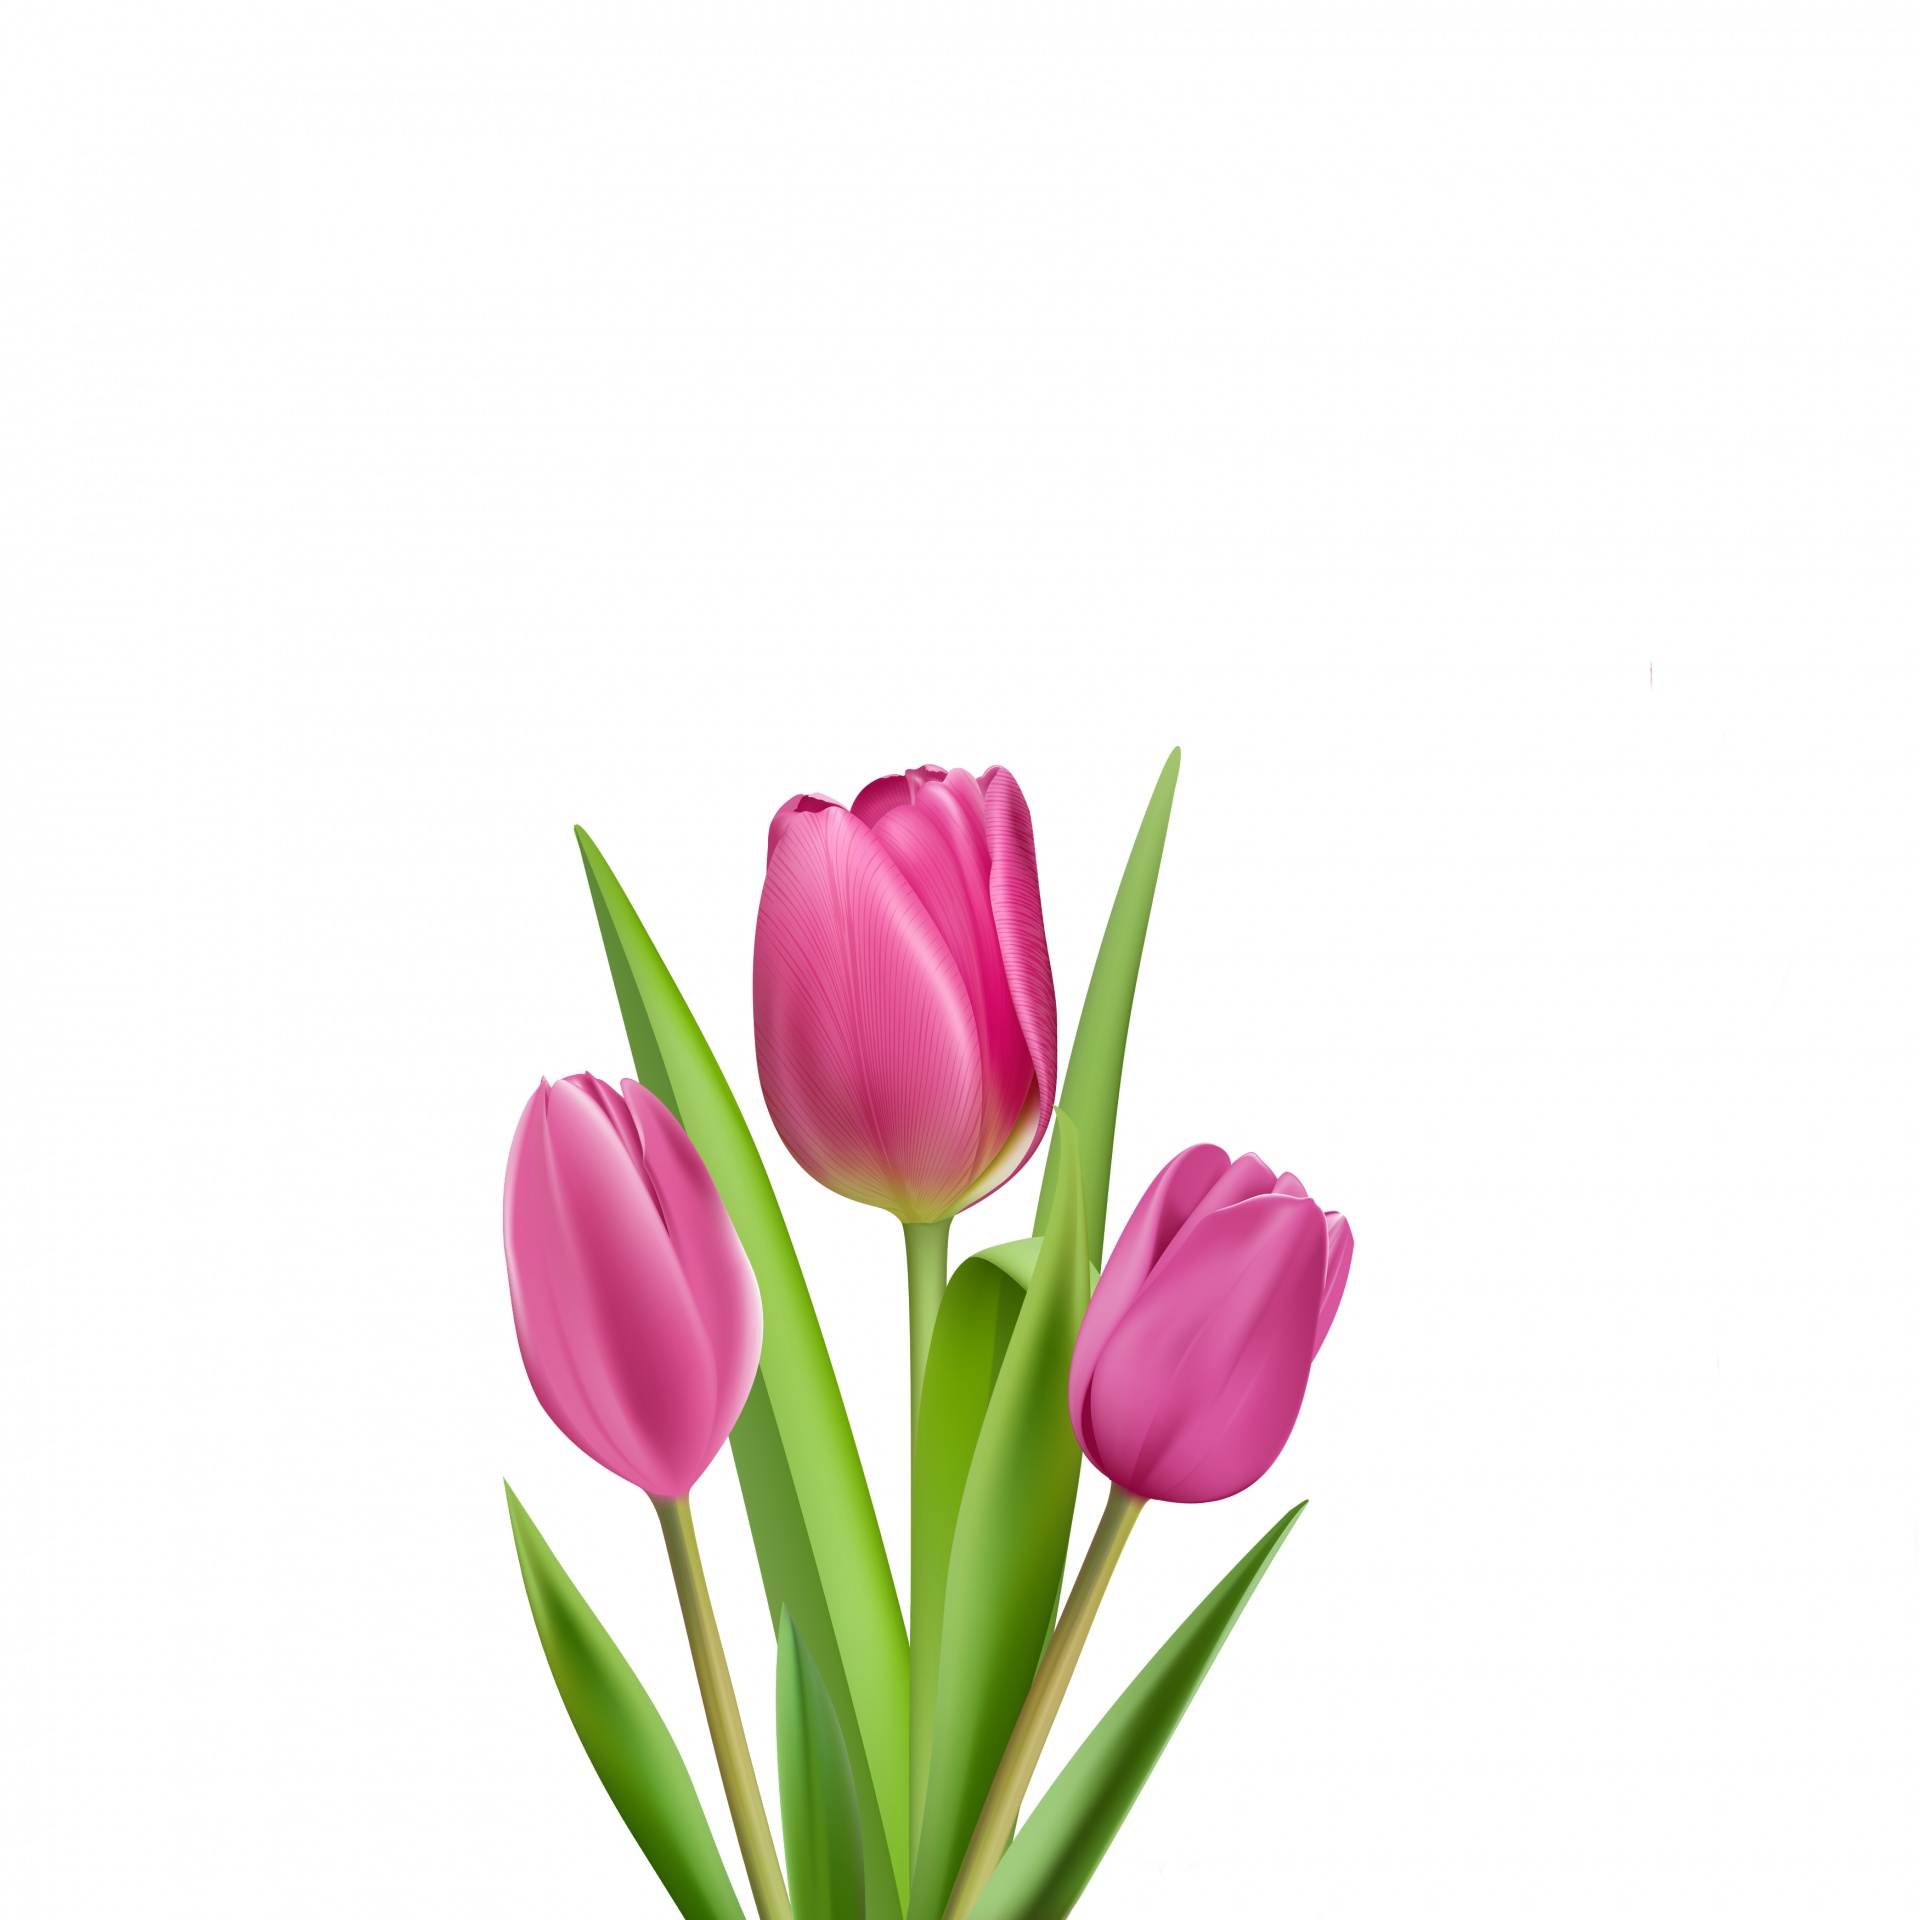 Tulips,tulip,illustration,clipart,pink.